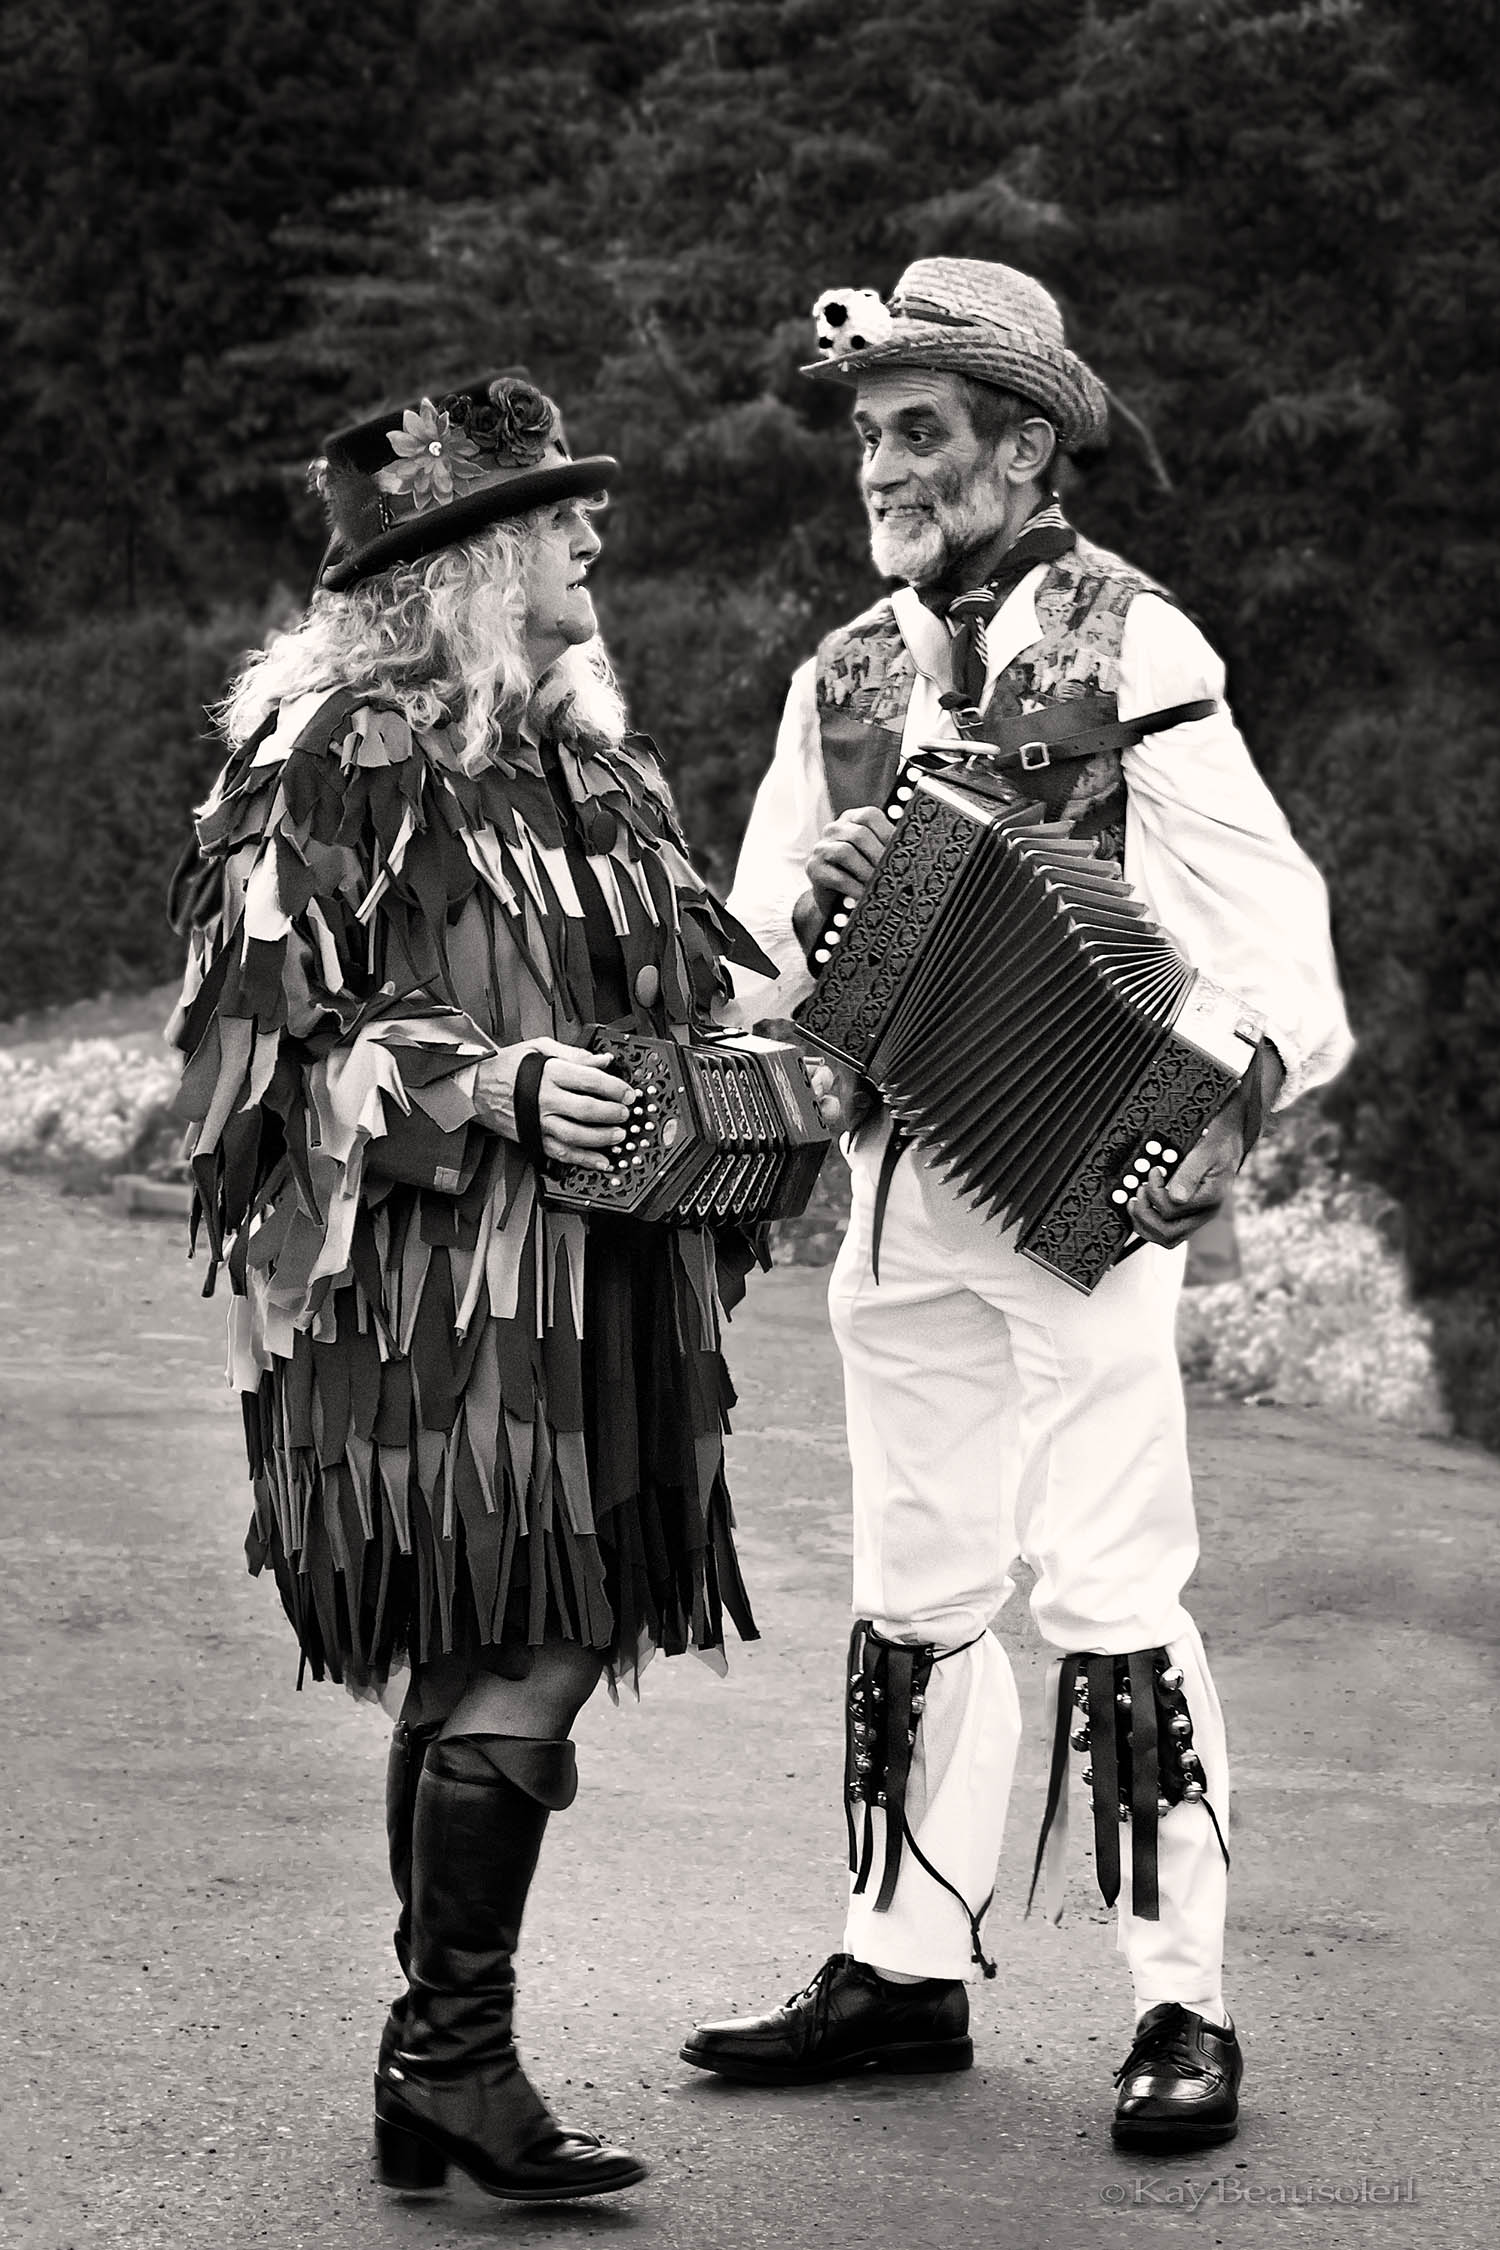 Slices of Life: INTERLUDE AT THE MORRIS DANCE